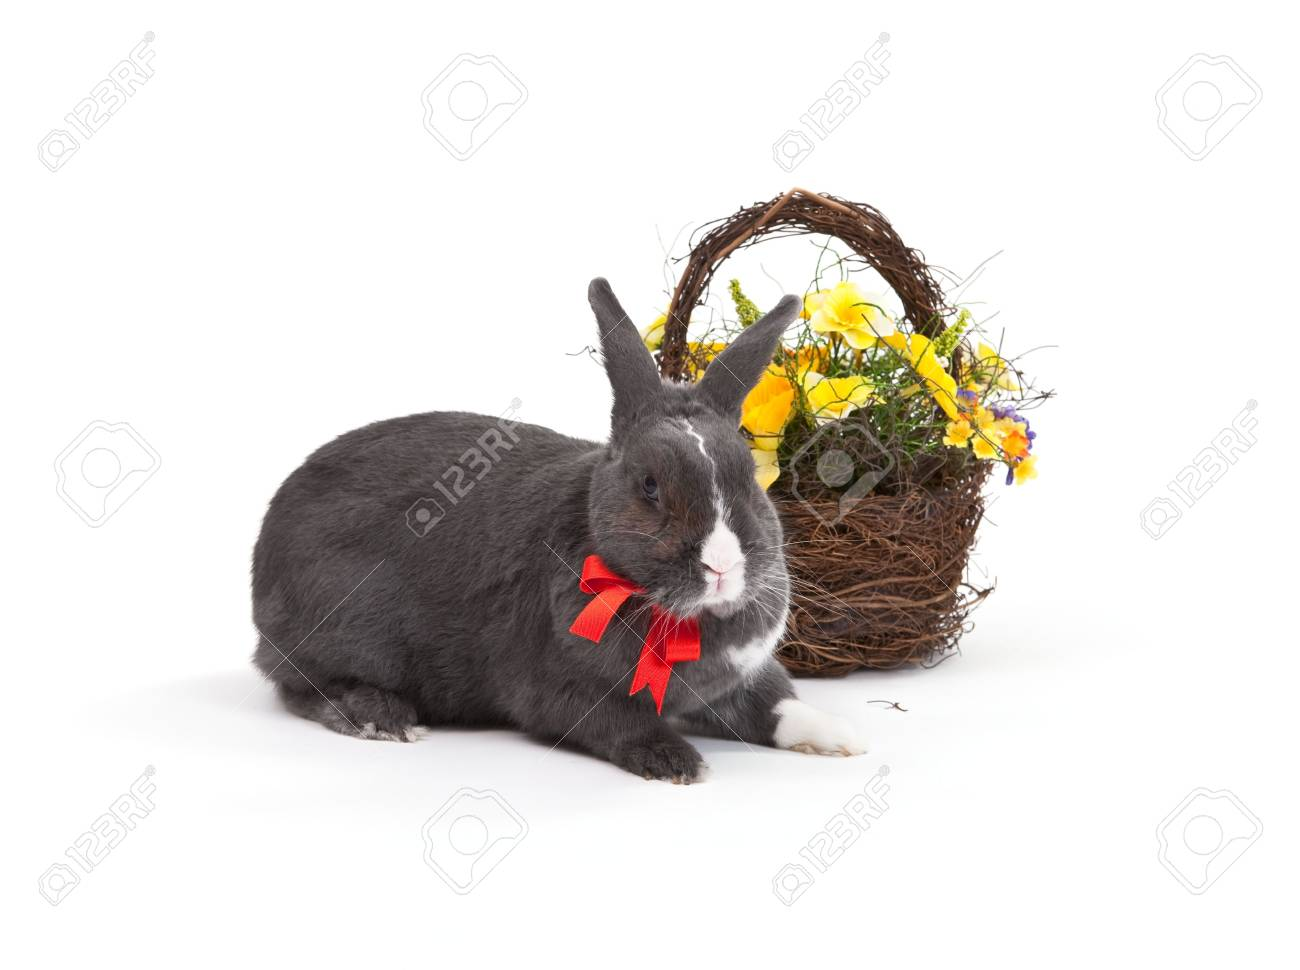 Easter bunny isolated on white background. Stock Photo - 6347727